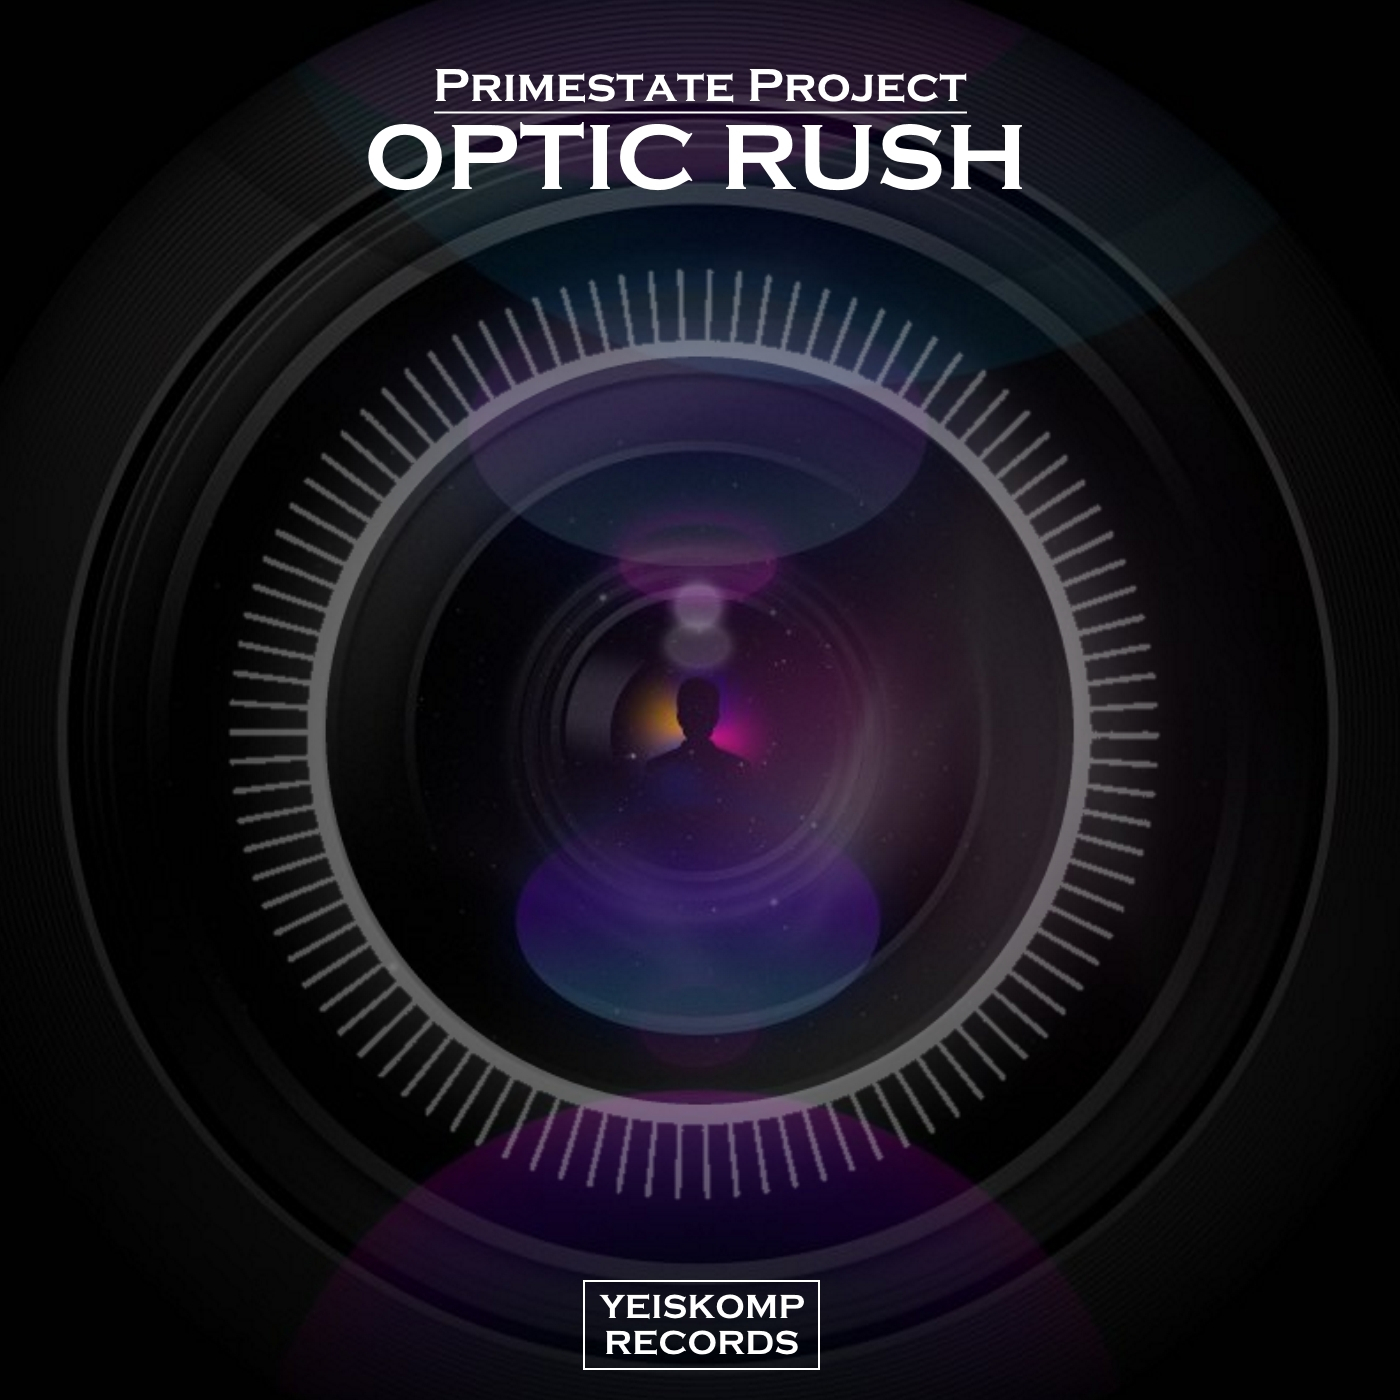 Primestate Project - Optic Rush (Original Mix)